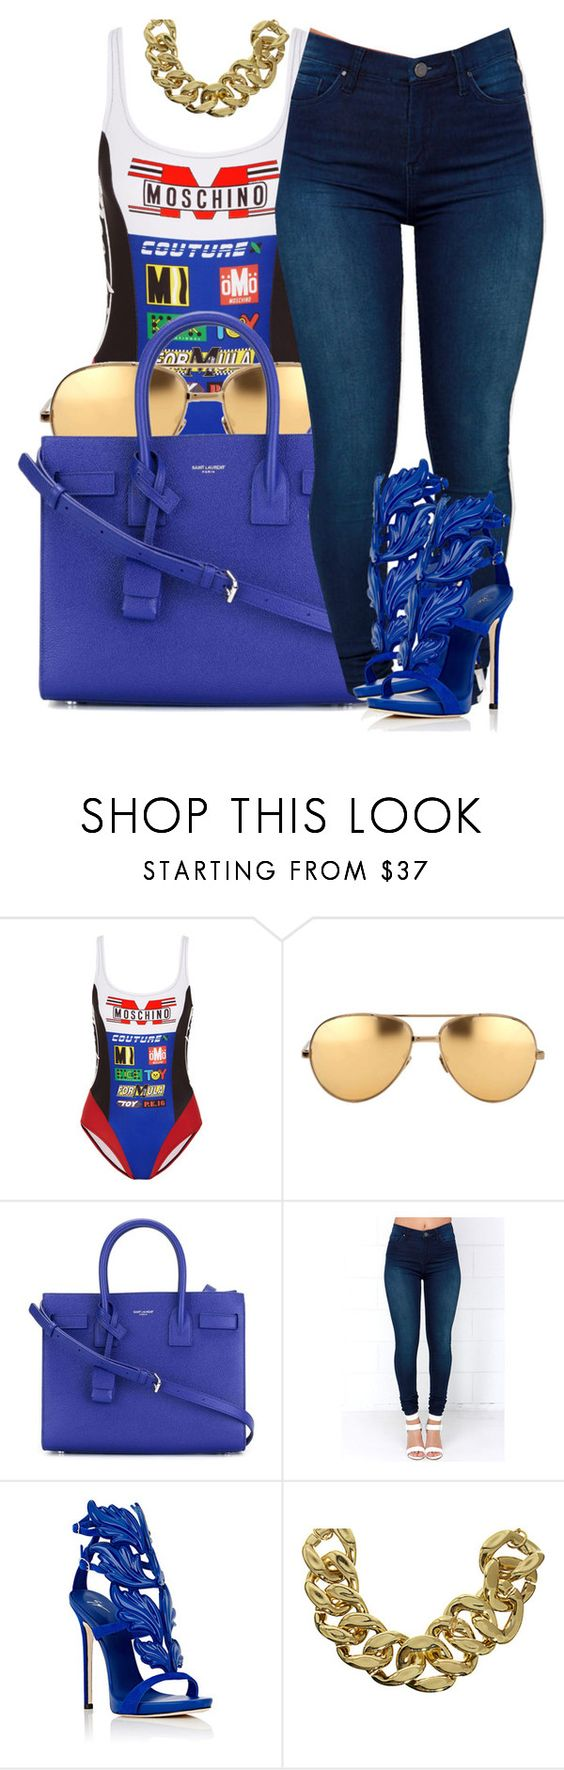 """Untitled #29"" by bonbonkabengele ❤ liked on Polyvore featuring Moschino, Linda Farrow, Yves Saint Laurent, BLANKNYC, Giuseppe Zanotti and ASOS"